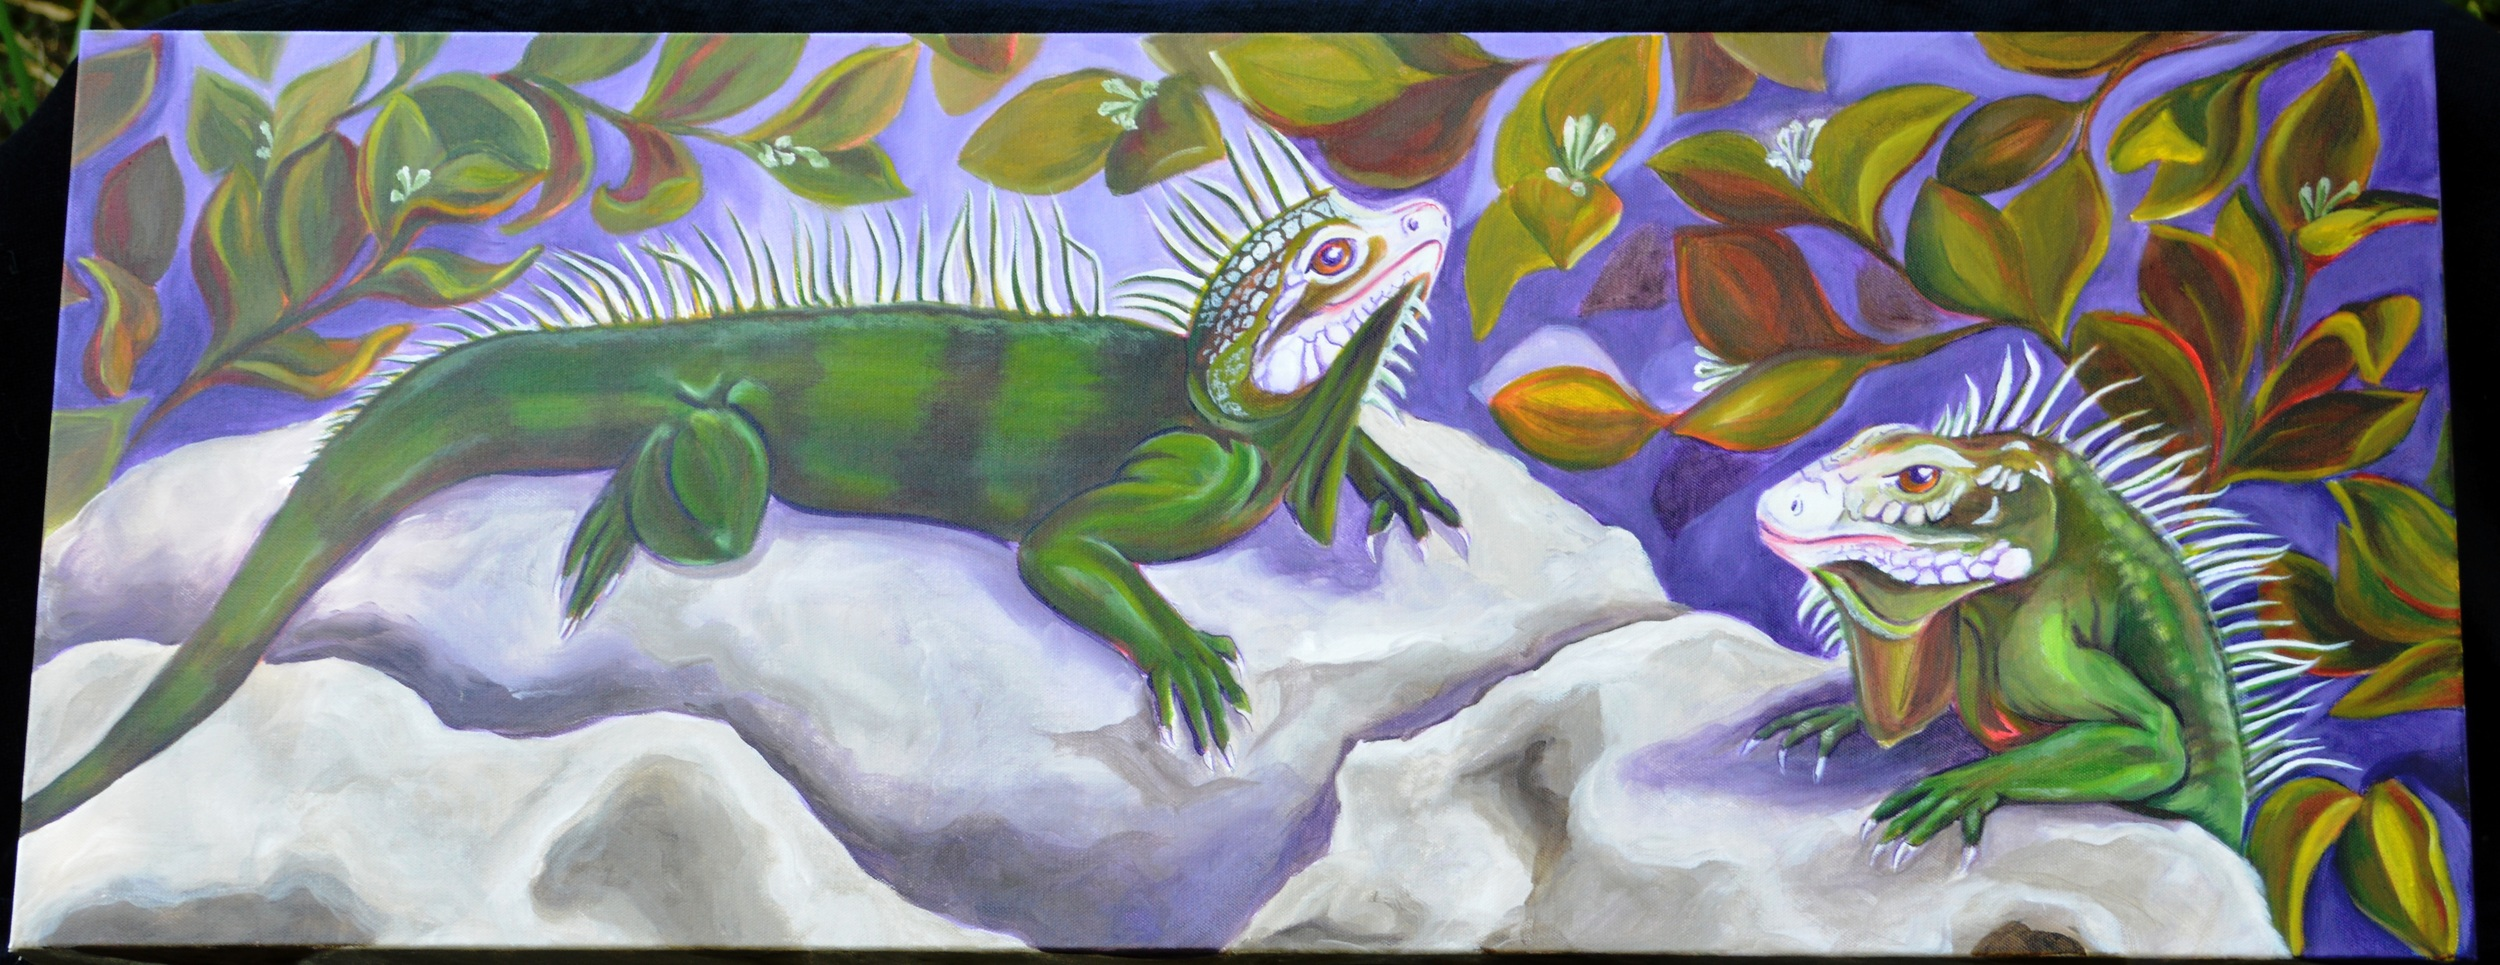 Laird_Lynn_ Just_Hanging_Out_Basking_Acrylic_on_Canvas_16x40_inches.jpg